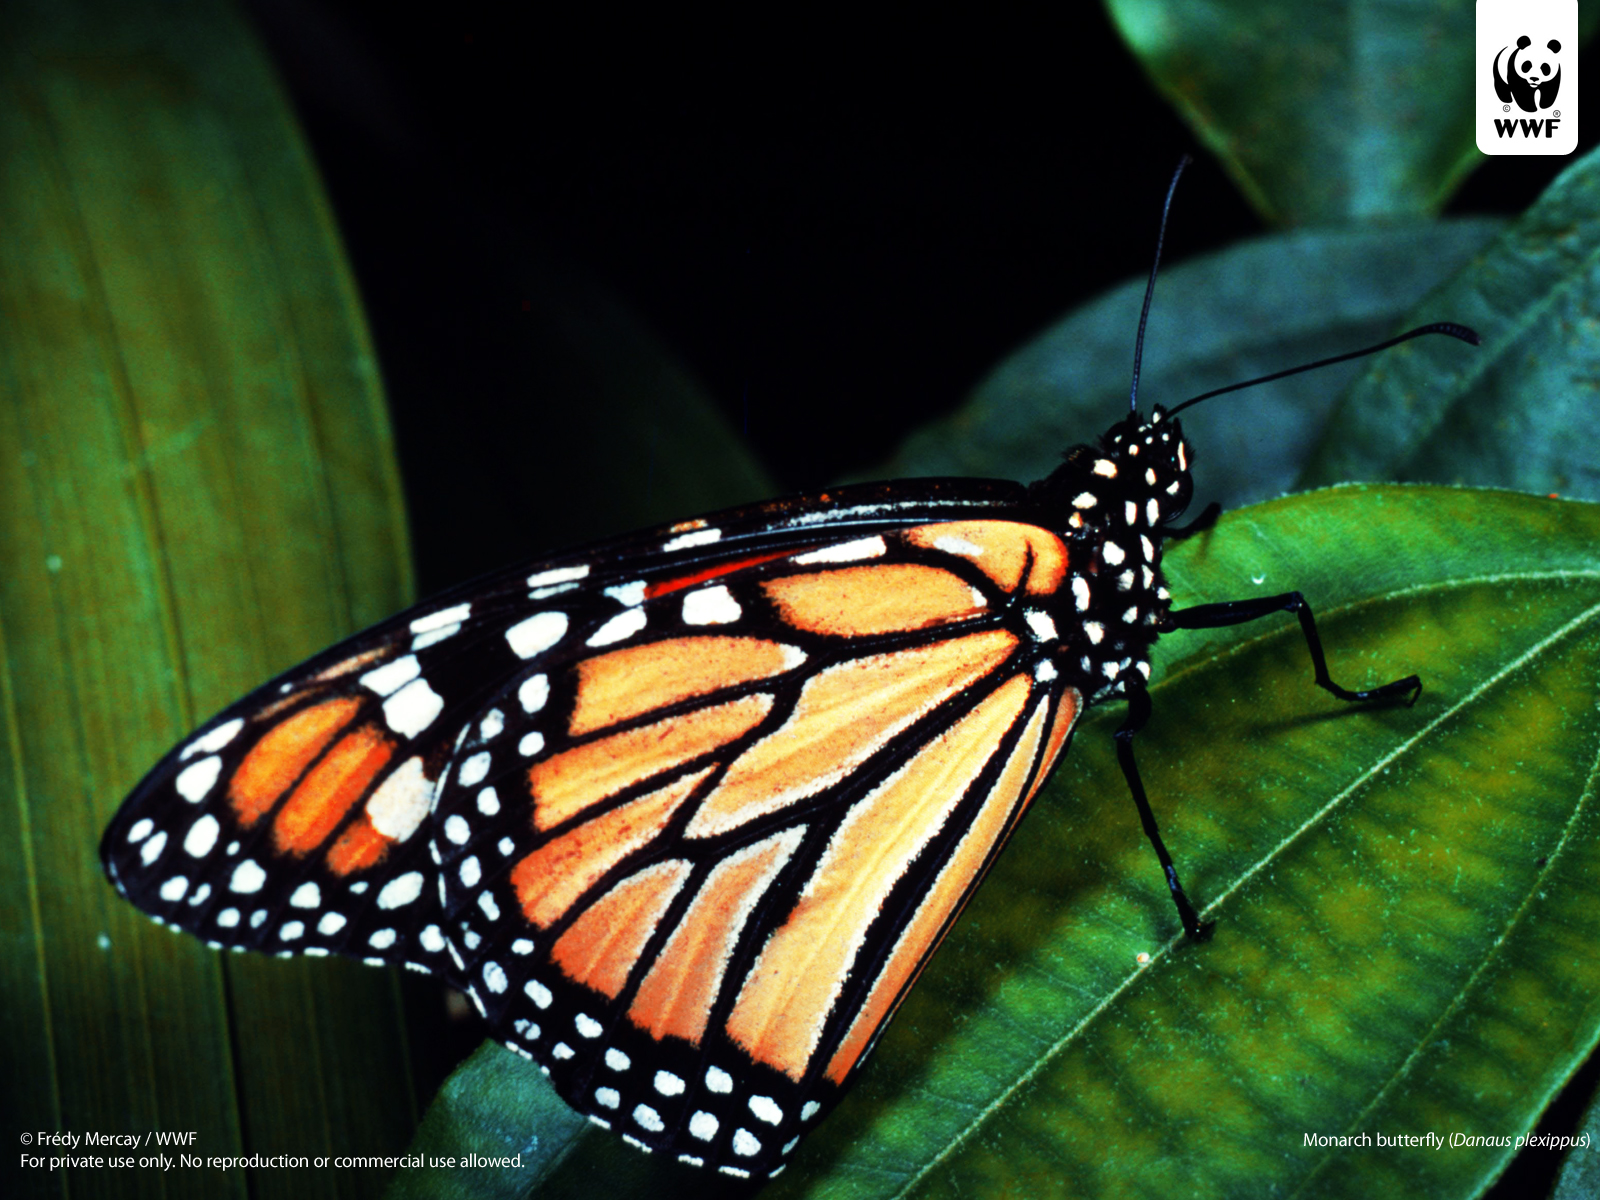 Monarch butterfly wallpaper Amazing Wallpapers 1600x1200